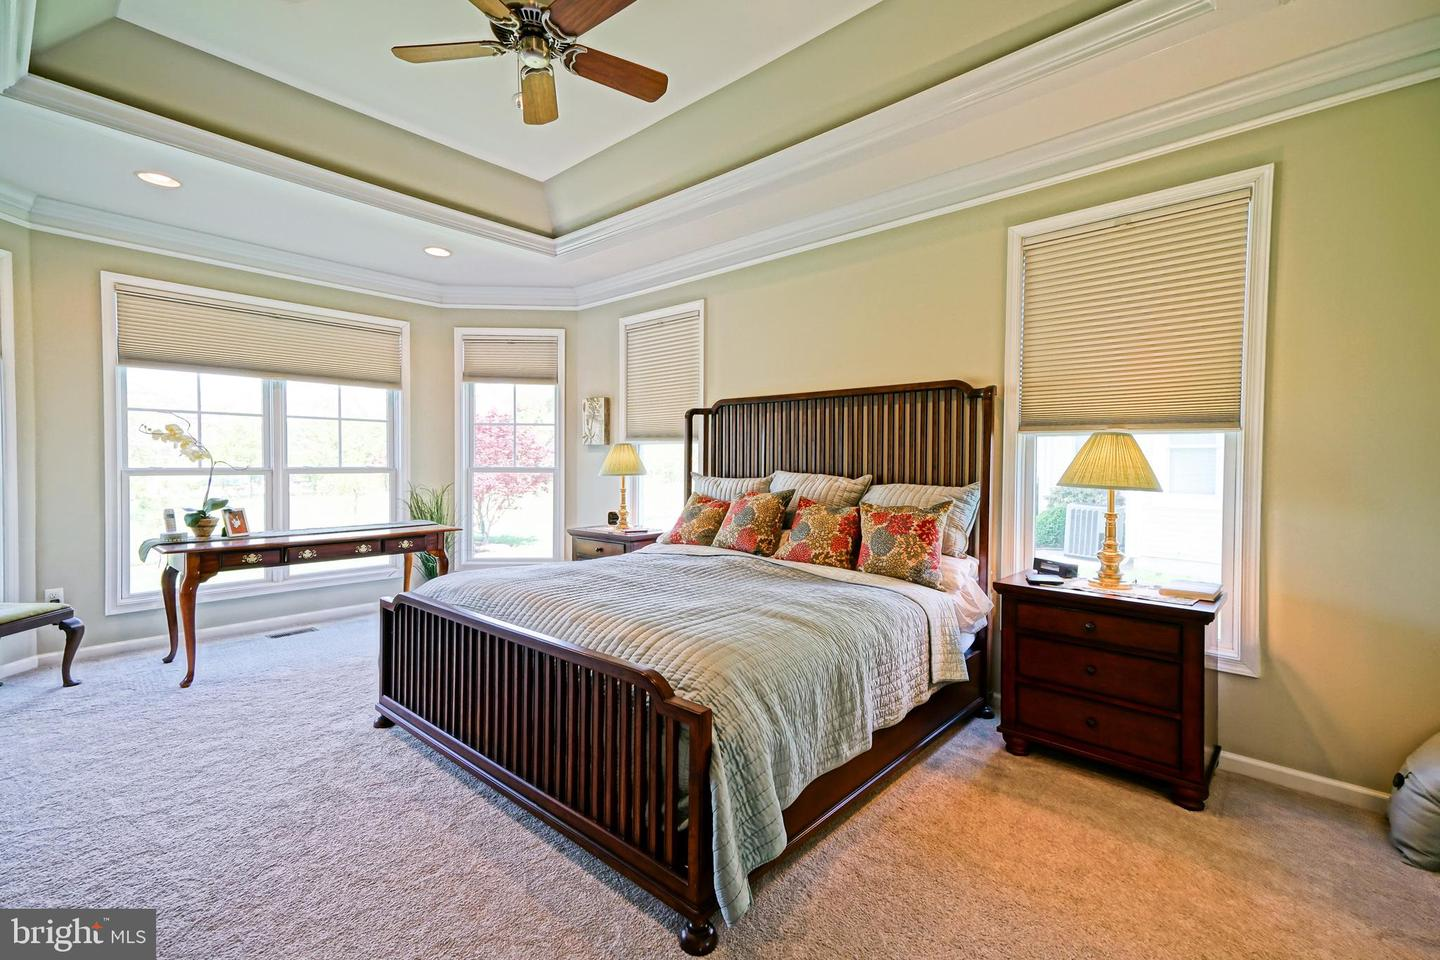 DESU139128-301667382034-2019-08-05-10-43-56 35222 Overfalls Dr N | Lewes, DE Real Estate For Sale | MLS# Desu139128  - Lee Ann Group